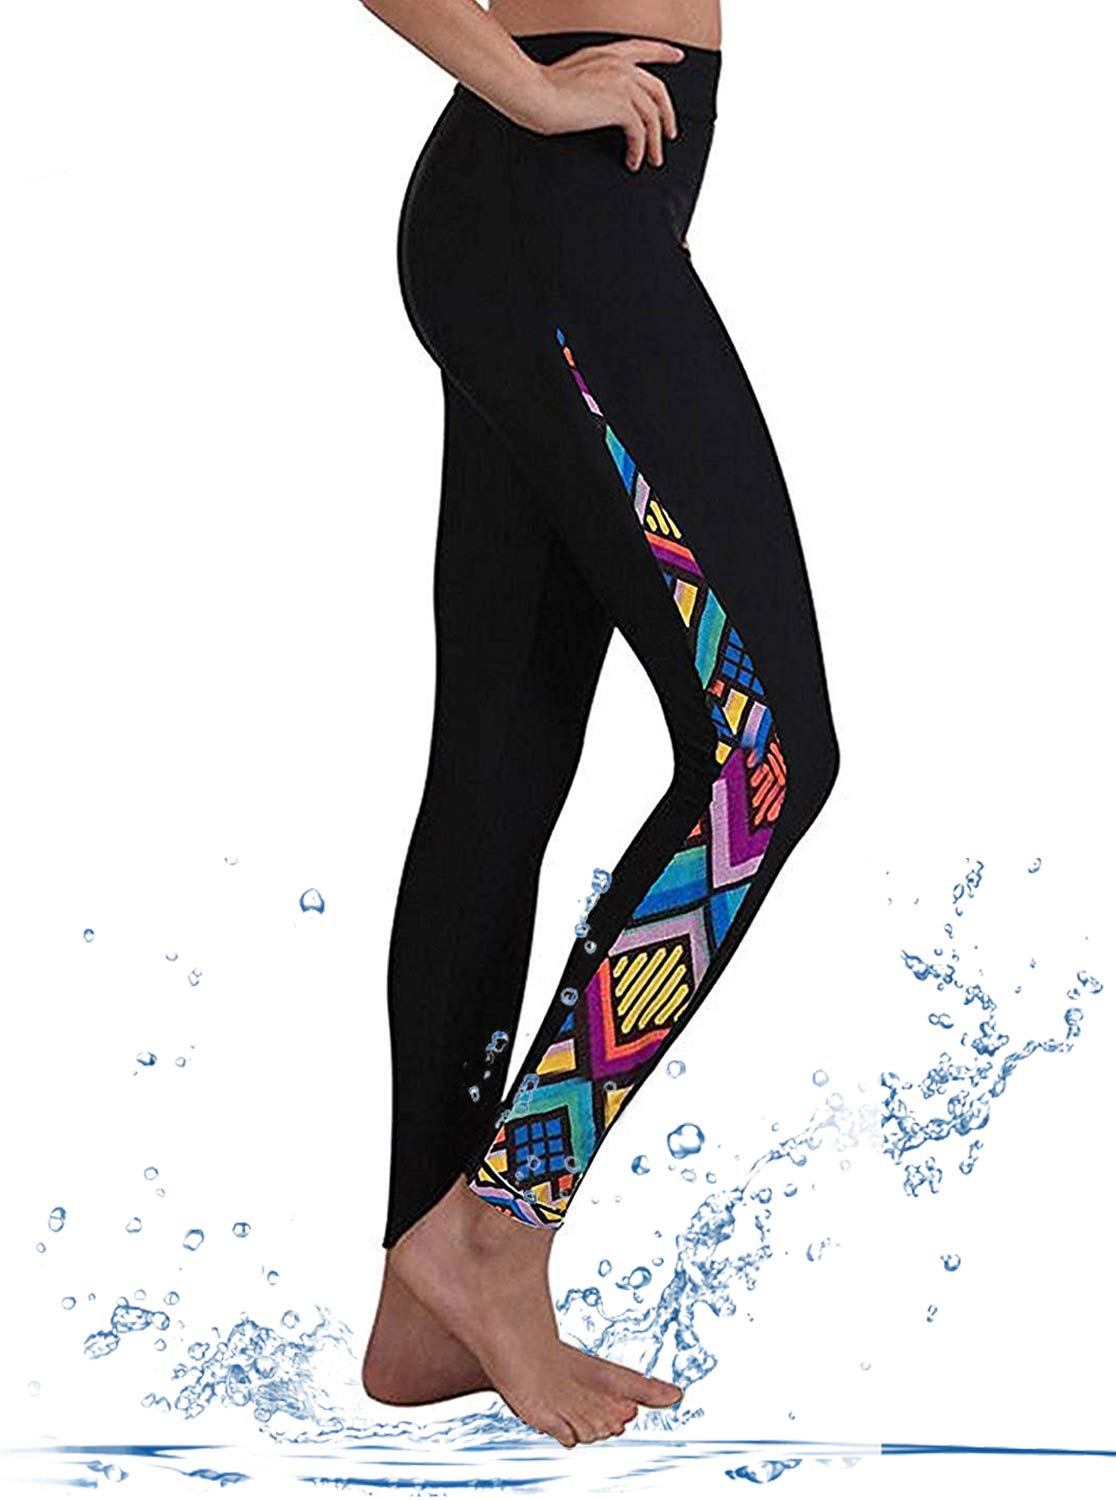 GEEK LIGHTING Womens Wetsuit Pants UV Protective Surfing Board Diving Canoing Pants Floral-B Small by GEEK LIGHTING